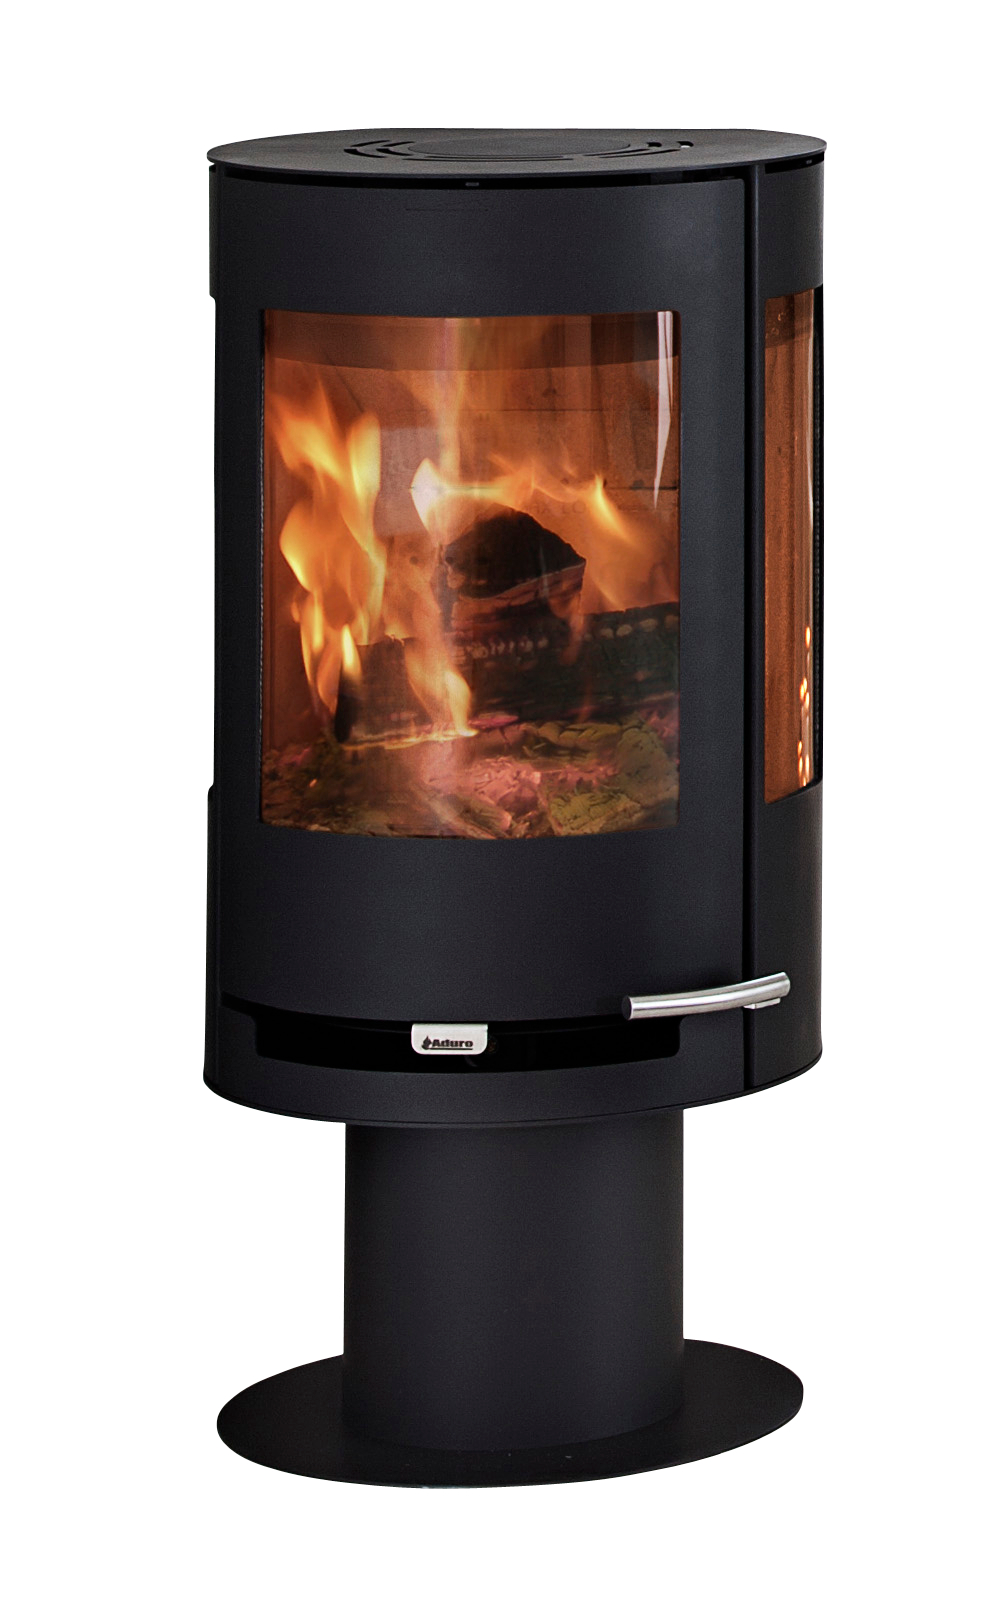 Aduro 9 3 Lux Wood Burning Stove Simply Stoves